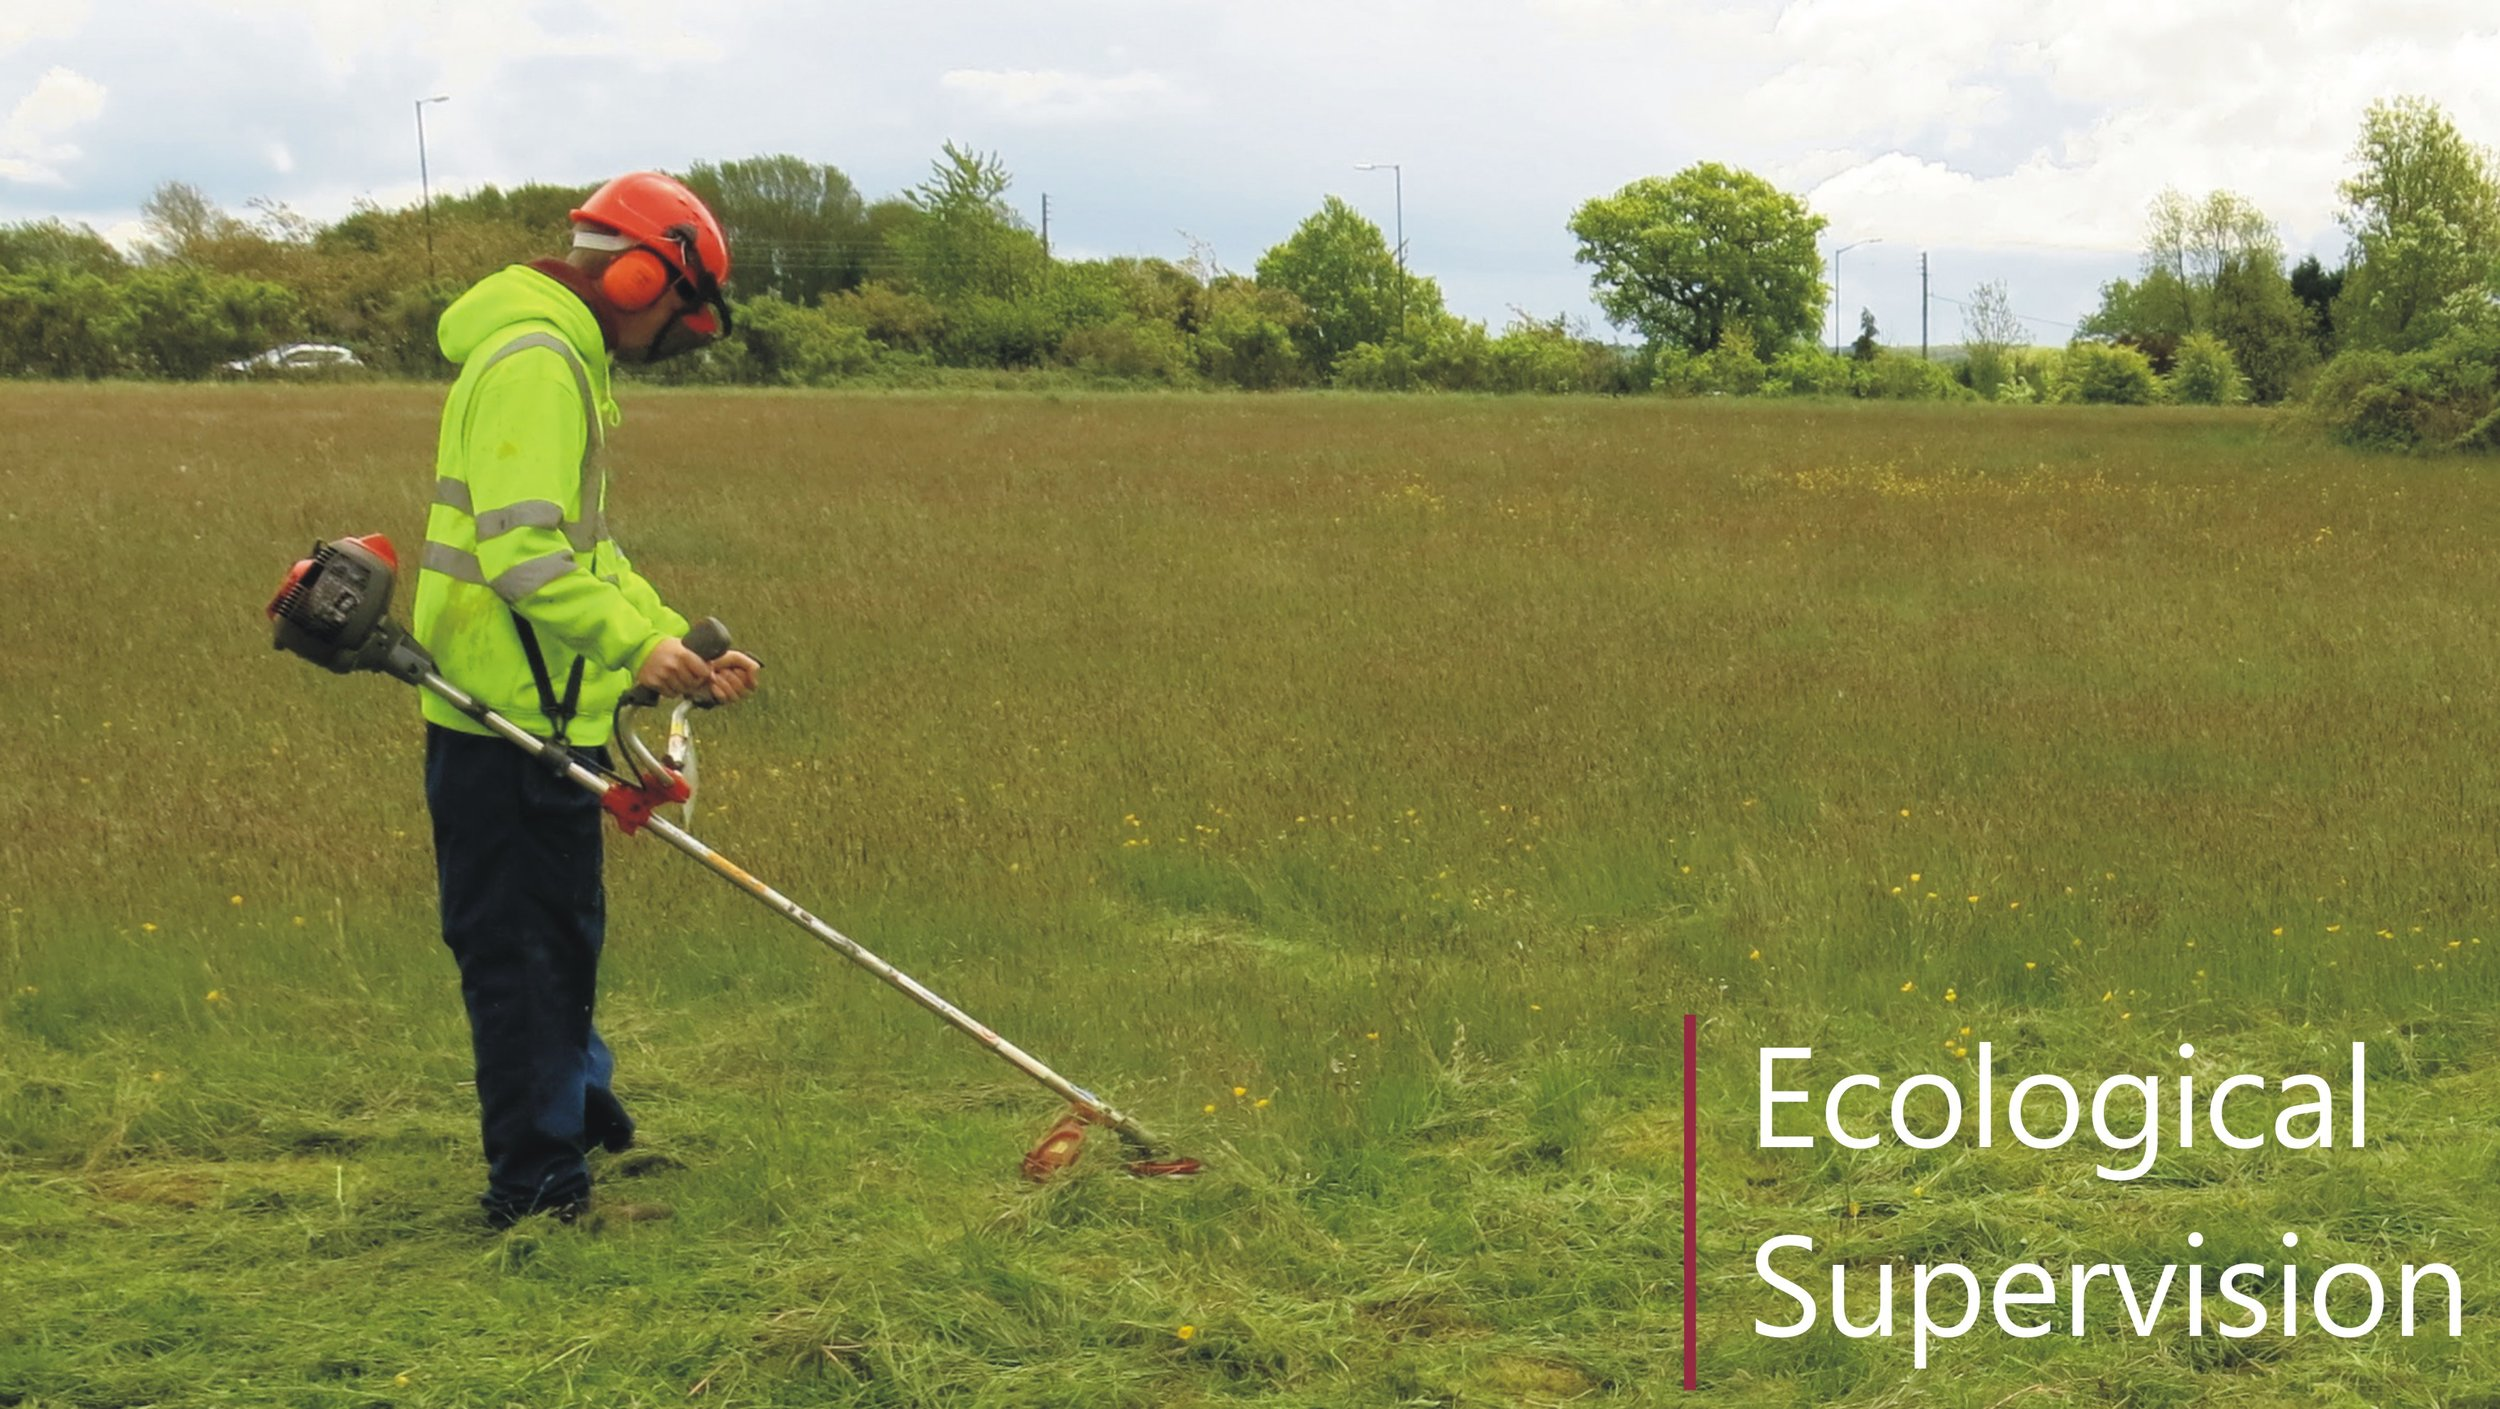 Ecological site supervision of contractors in an ECoW role in Yorkshire